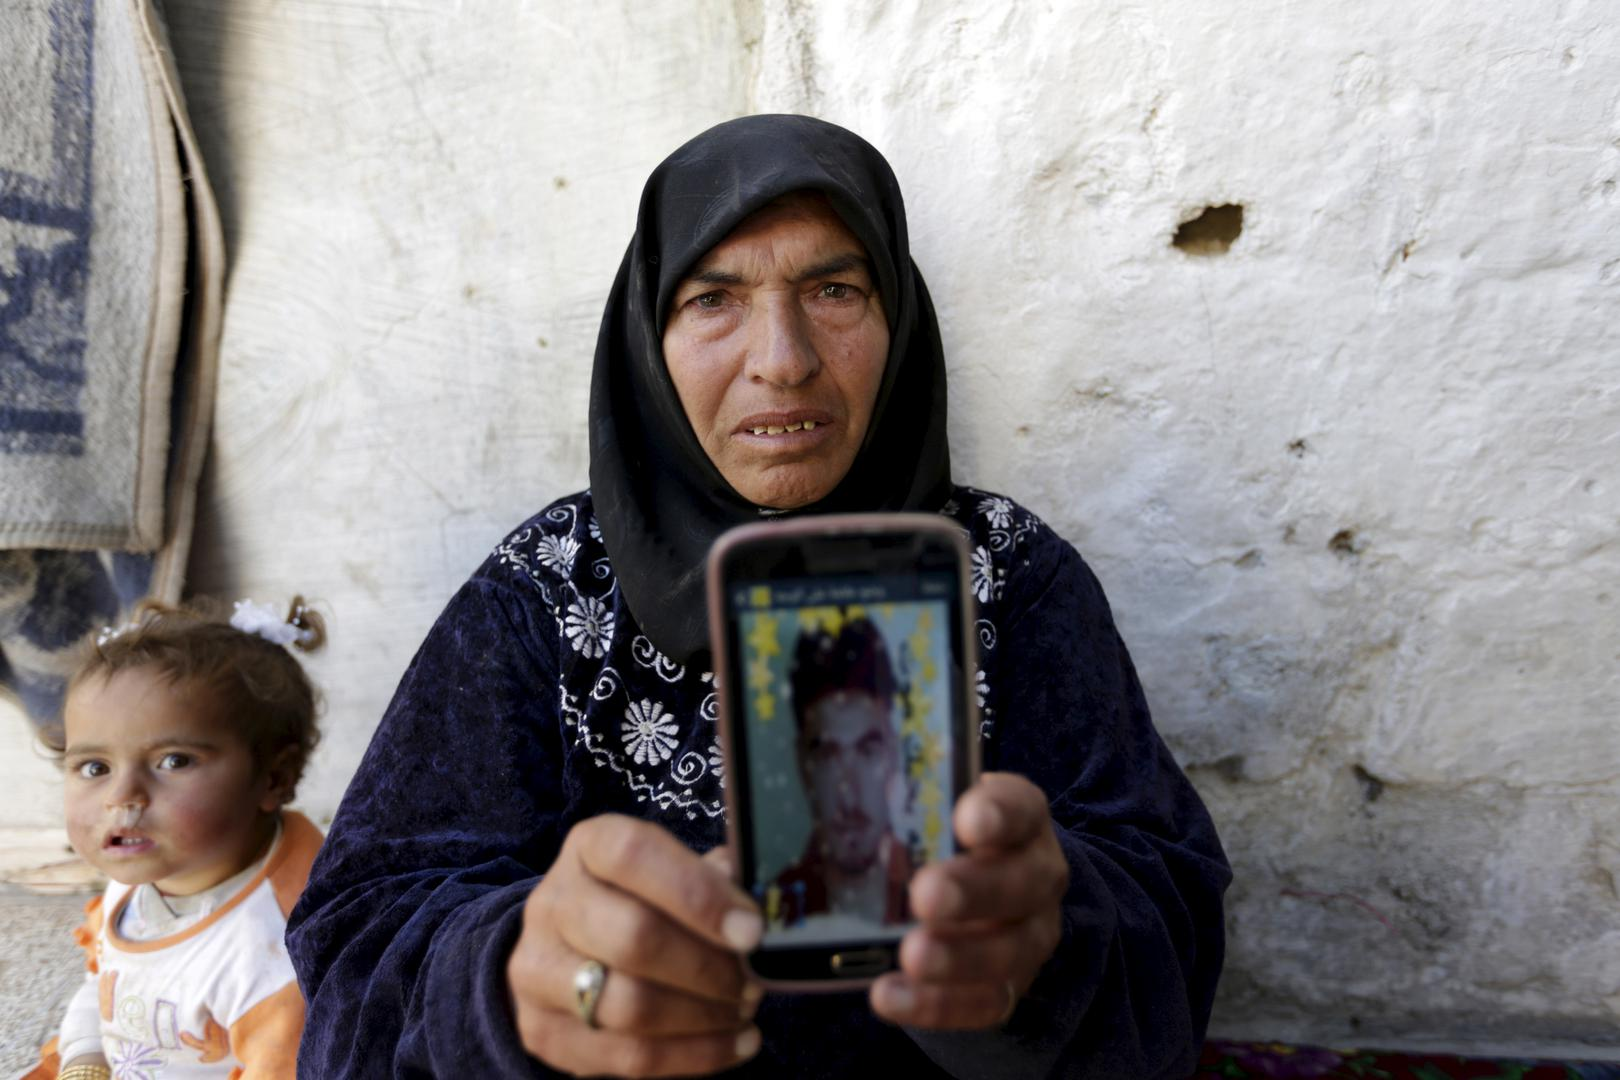 A mother shows a picture of her son, who was detained by authorities in the northern Syrian province of Idlib, Syria, March 20, 2016. She has not heard any news about her son since then.